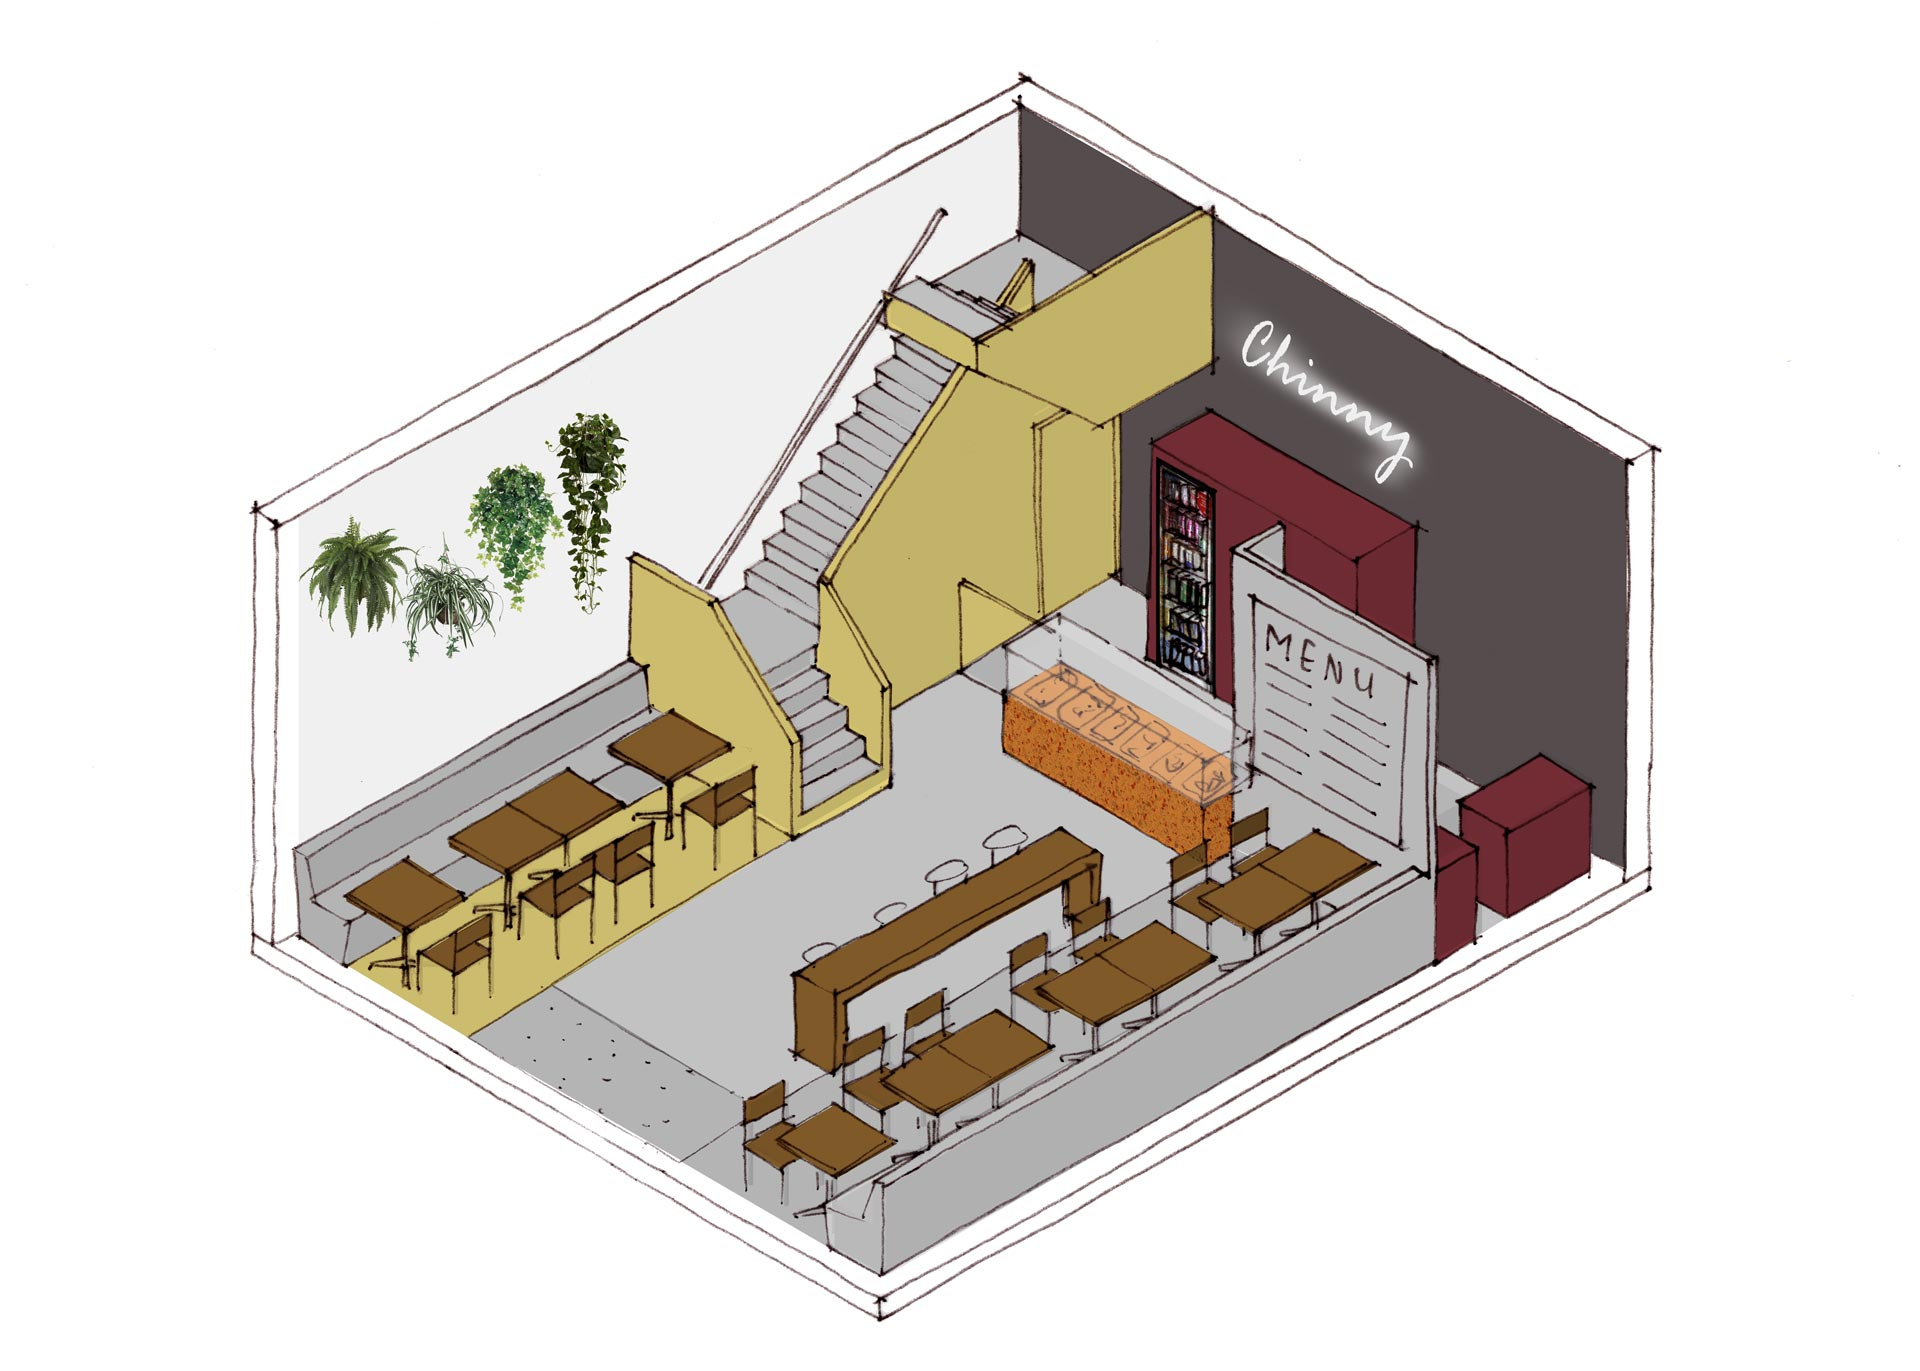 Chinny-Surinam-Streetfood-restaurant-interior-isometric-option-3-lagado-architects